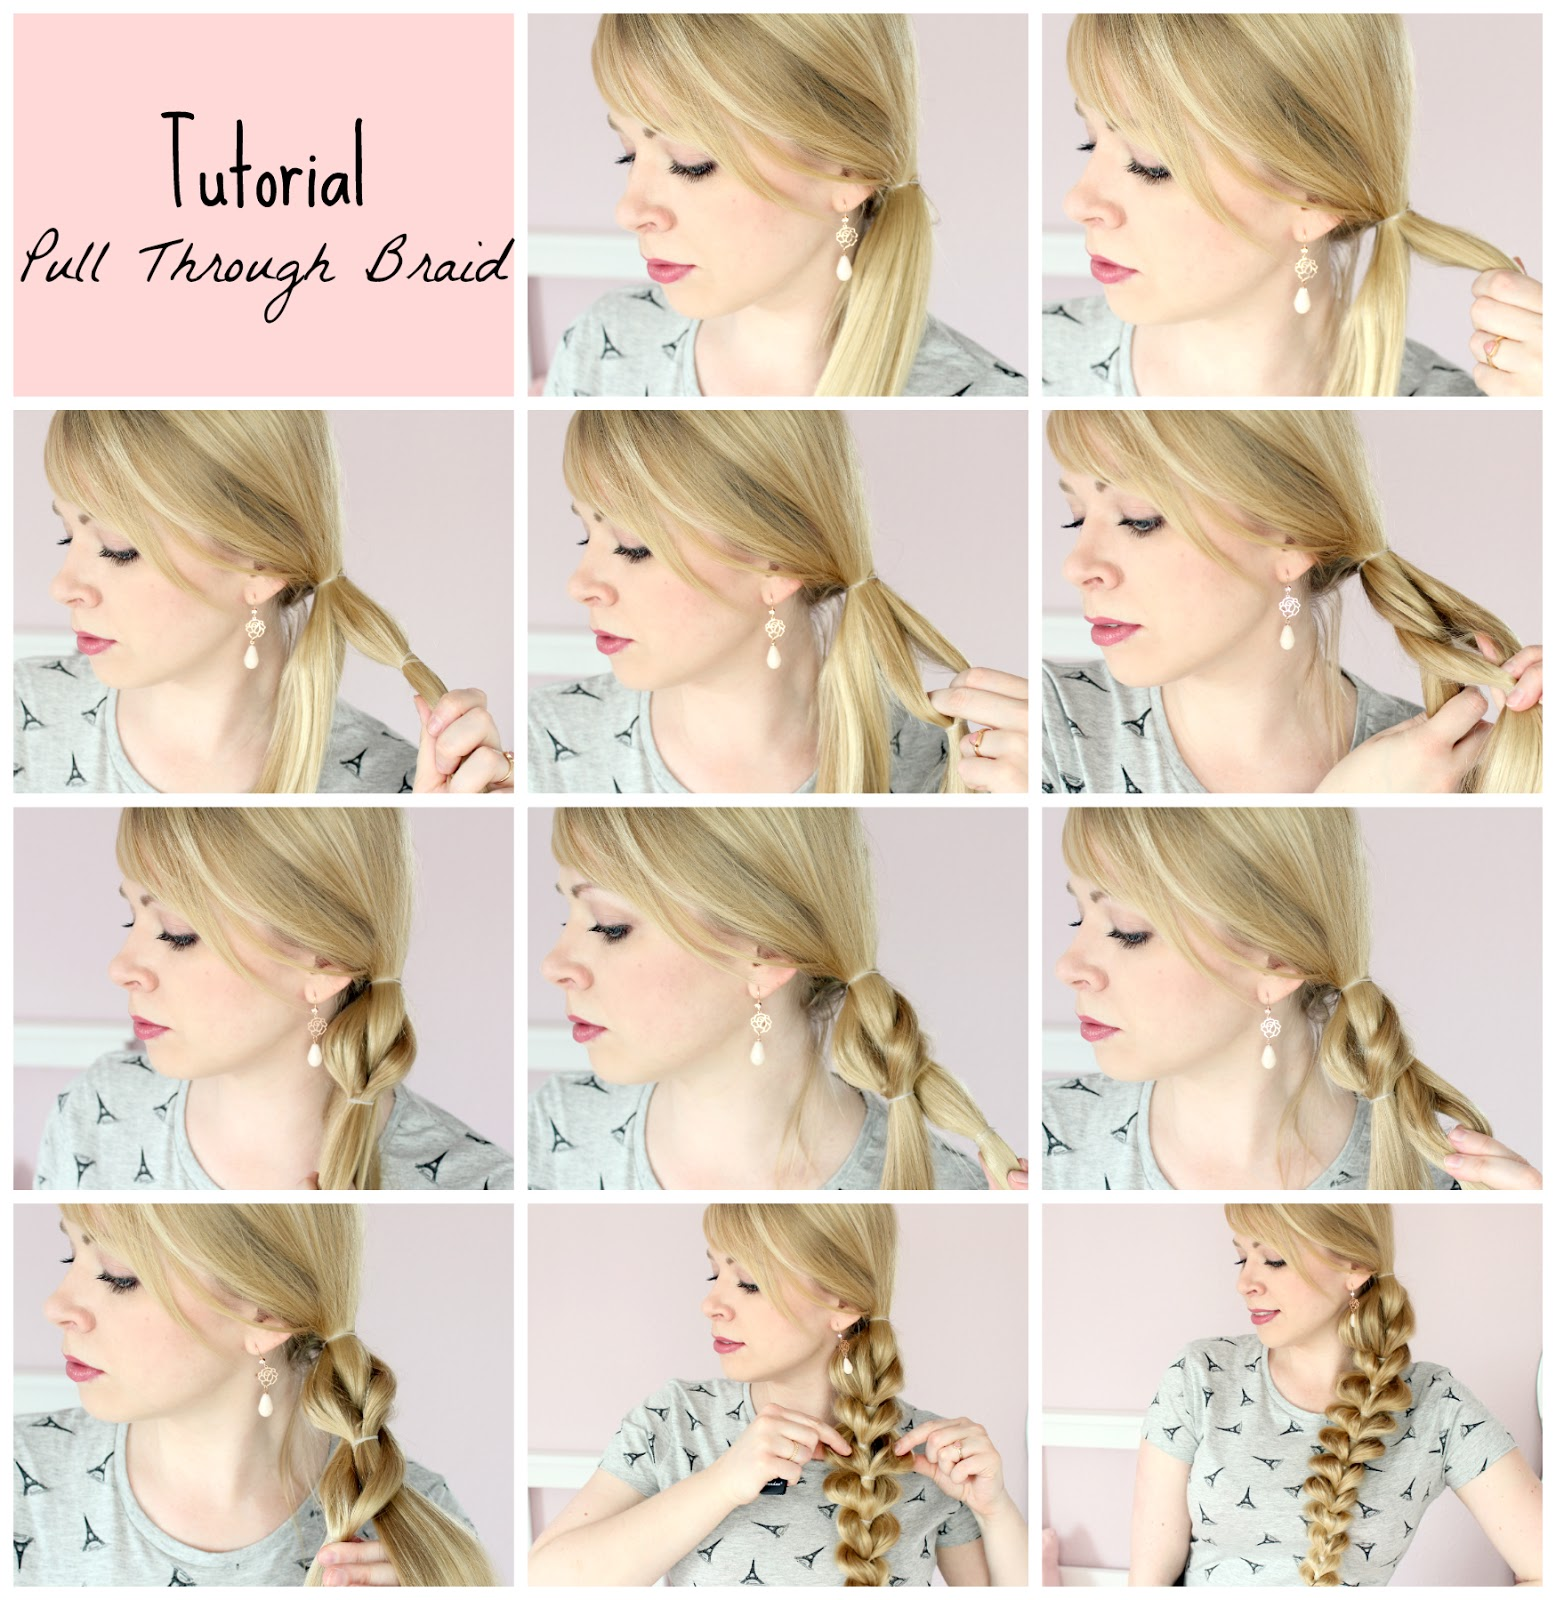 Tutorial Pull Through Braid Einfach Ohne Flechten Blush Affair